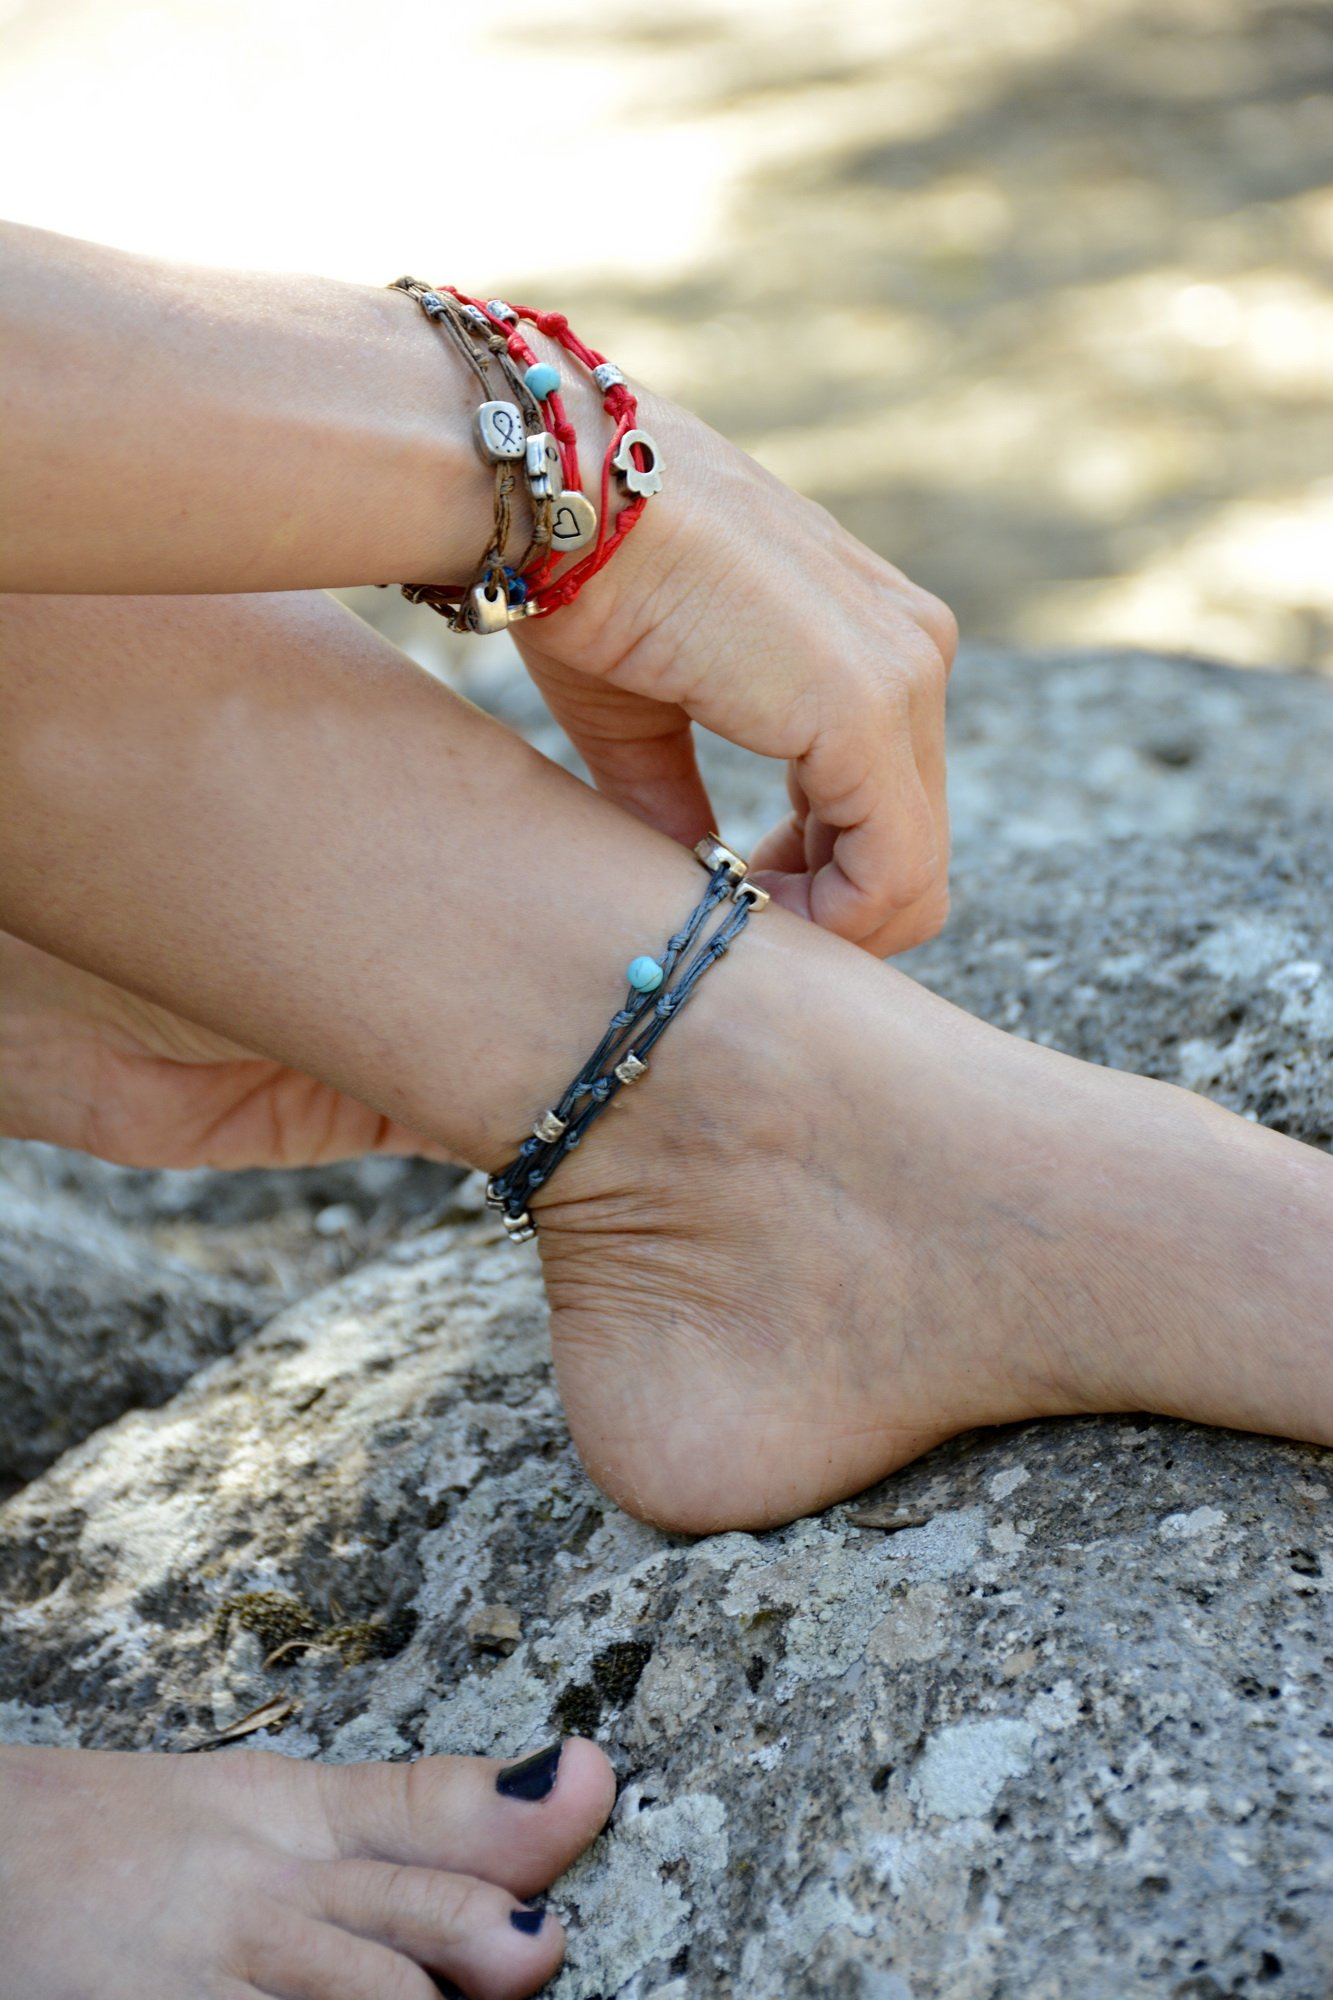 Handmade Denim Blue & Silver Double Wrap Anklet for Good Luck - 10.5'' by MIZZE Made for Luck (Image #5)